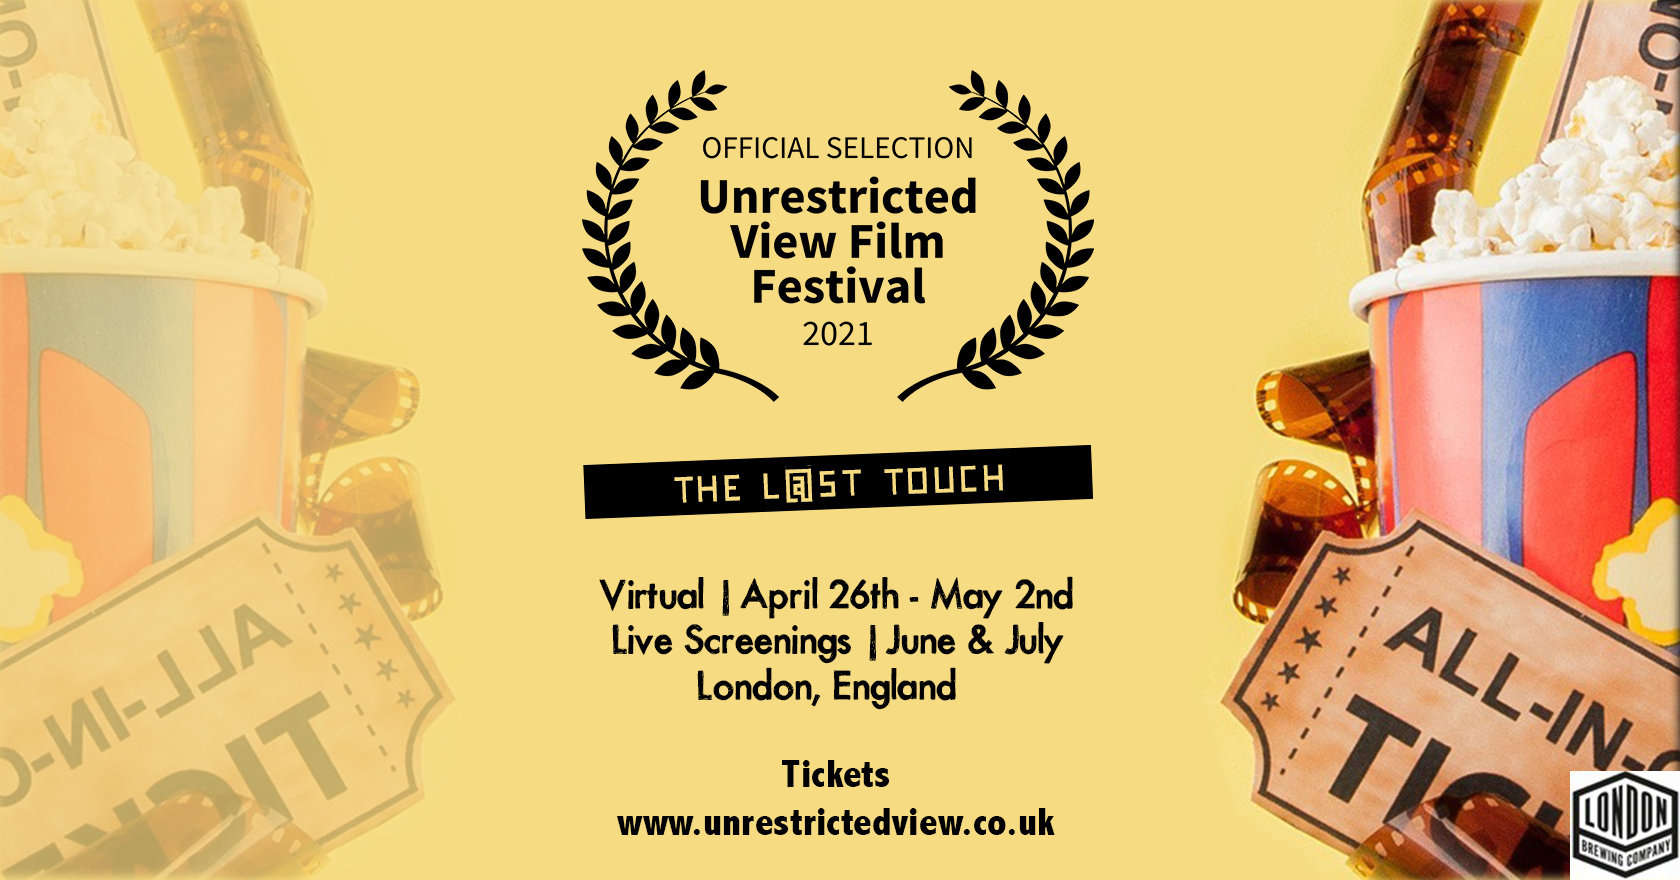 New Selection at Unrestricted View Film Festival 2021 in London | April 26 – May 2